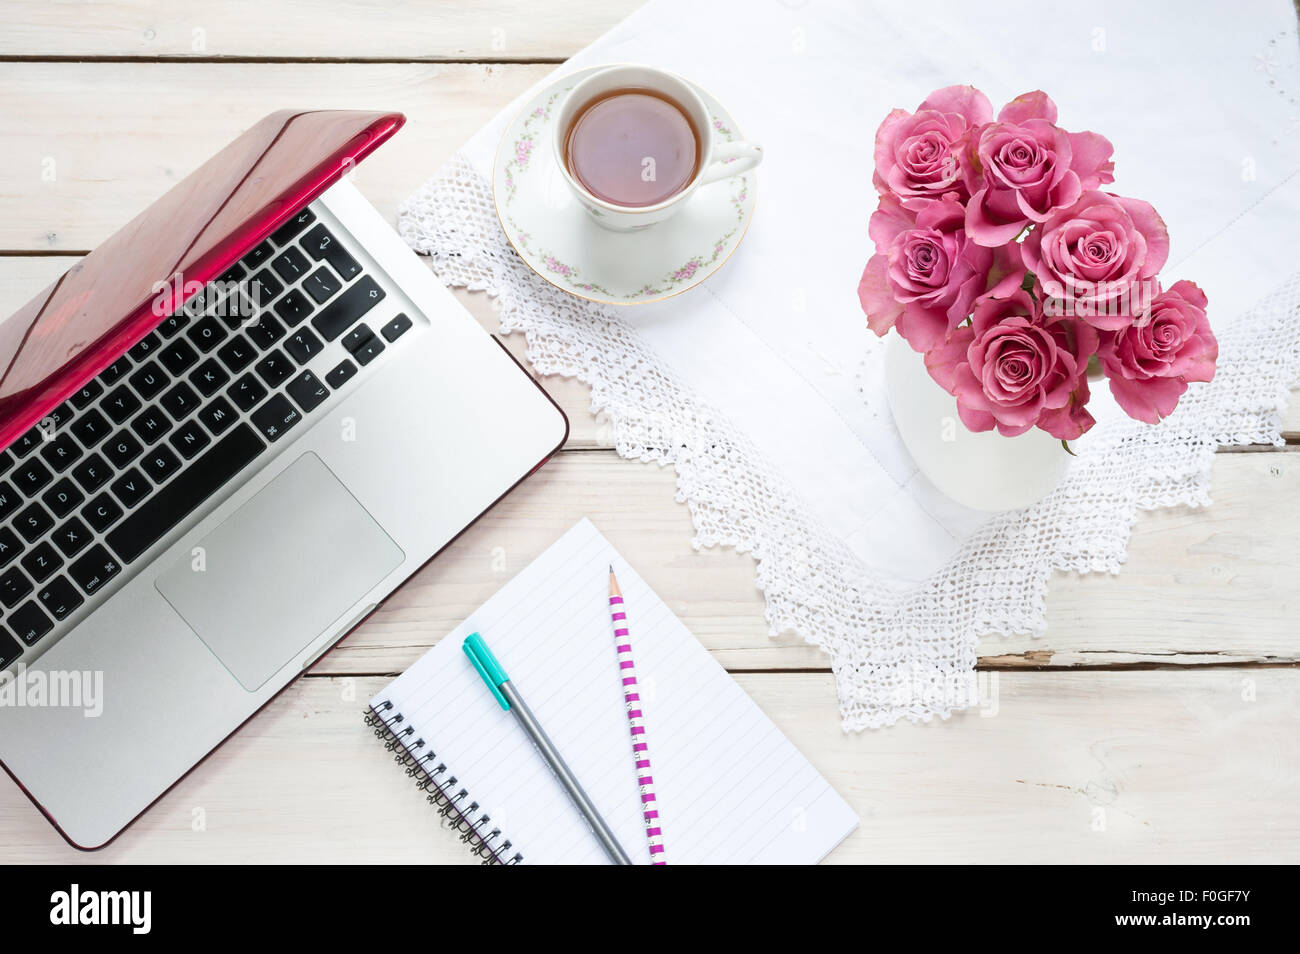 Working From Home Laptop Pink Roses Teacup Notebook